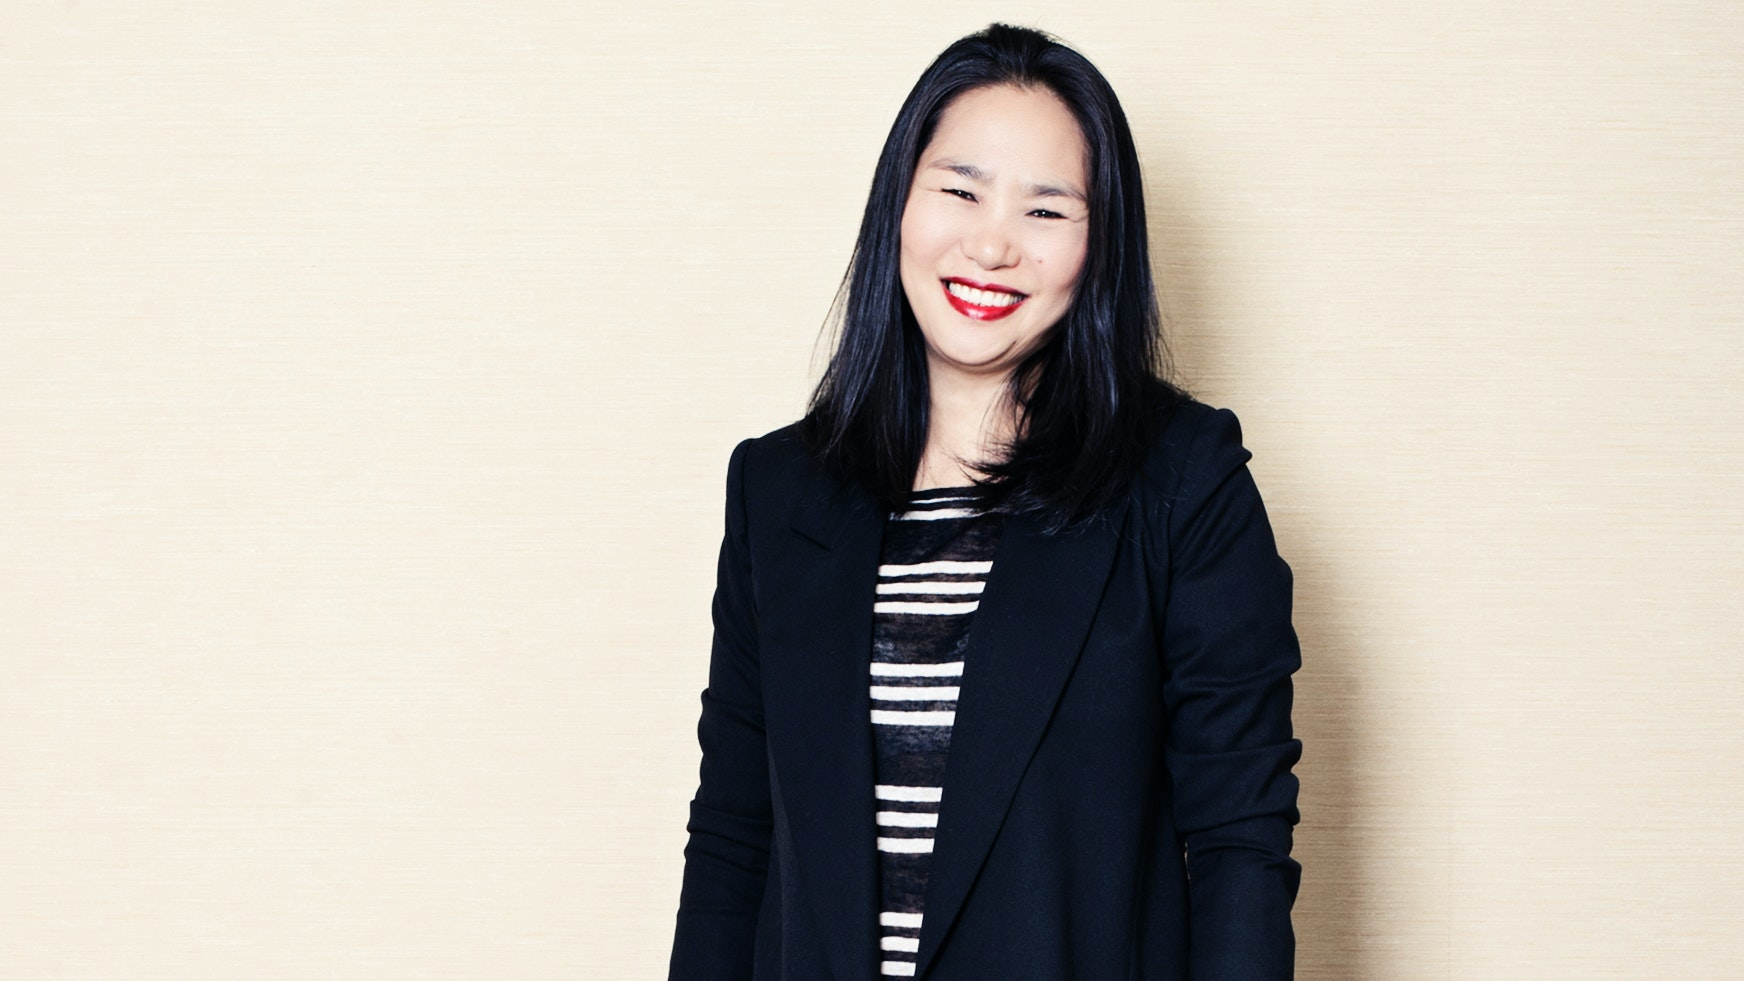 Vitamin C Serums, Cushion Compacts, and More Beauty Products Jin Soon Choi Loves